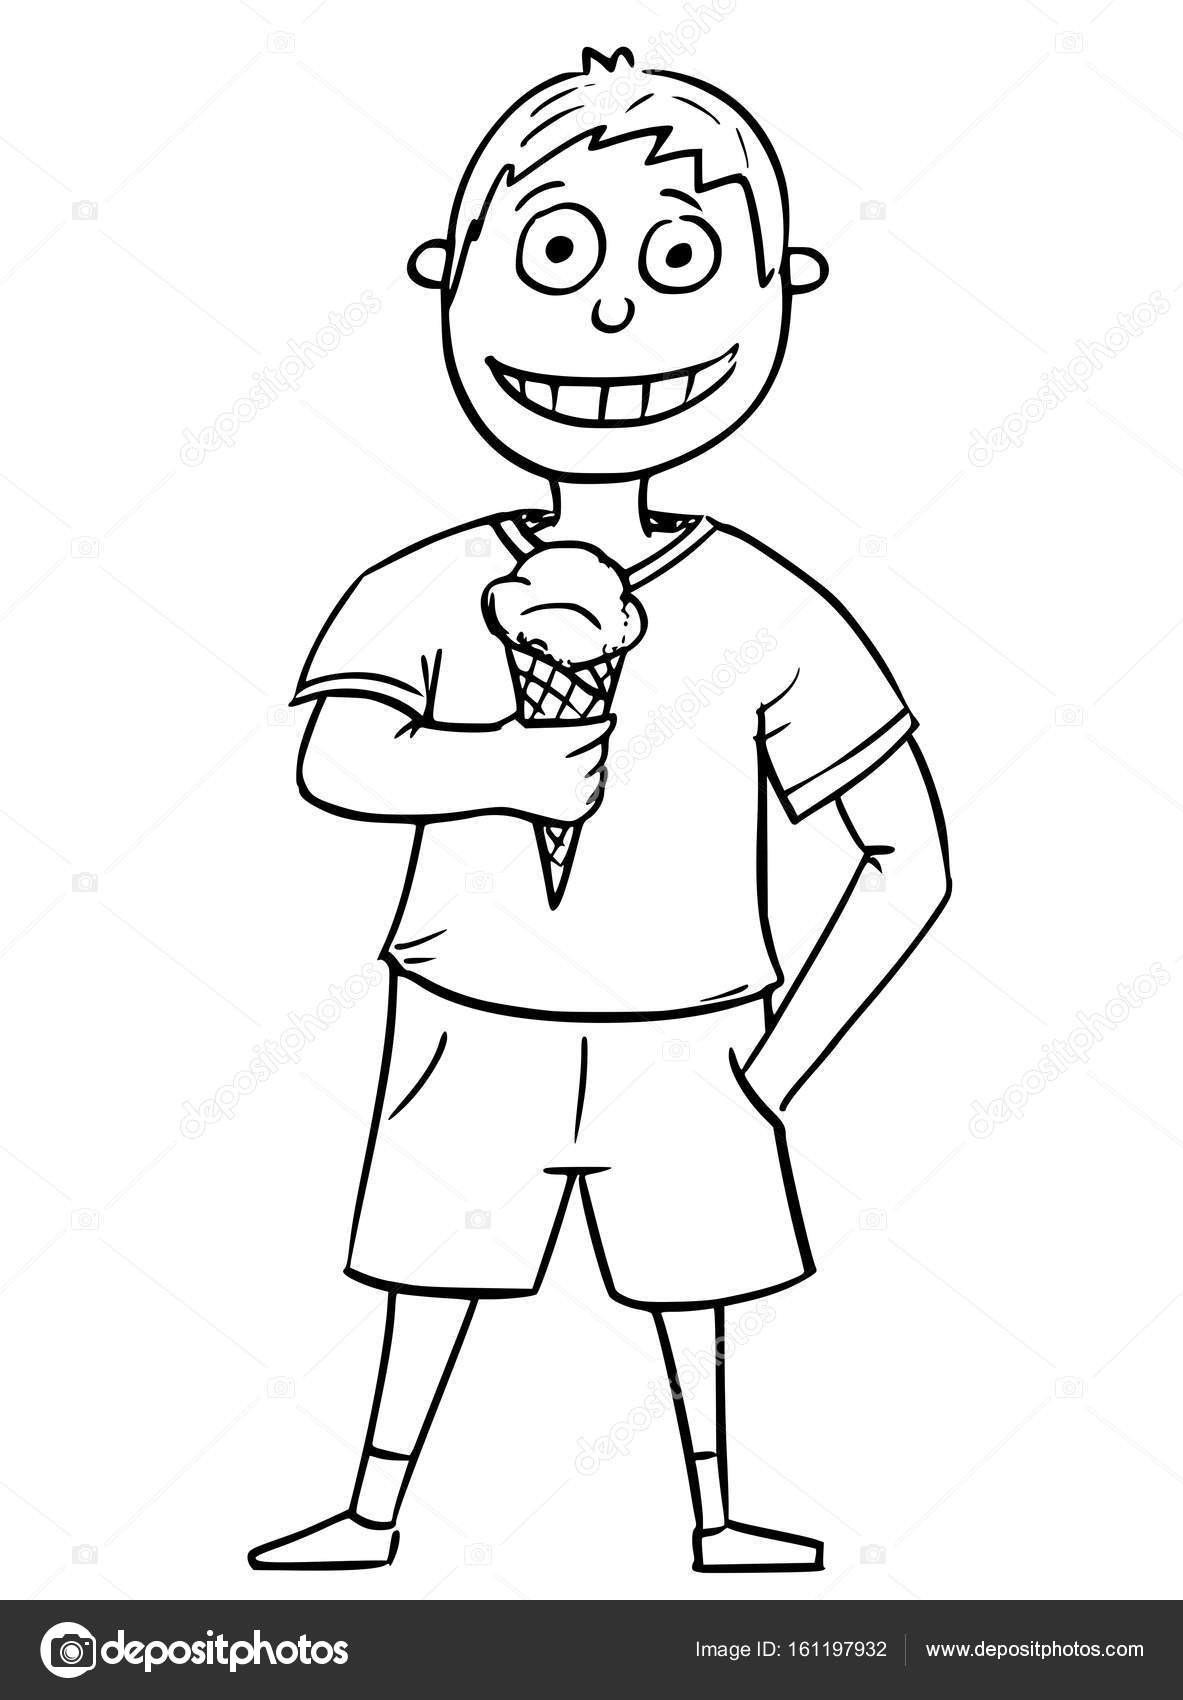 1183x1700 Cartoon Illustration Of Boy Holding Ice Cream Cone Stock Vector